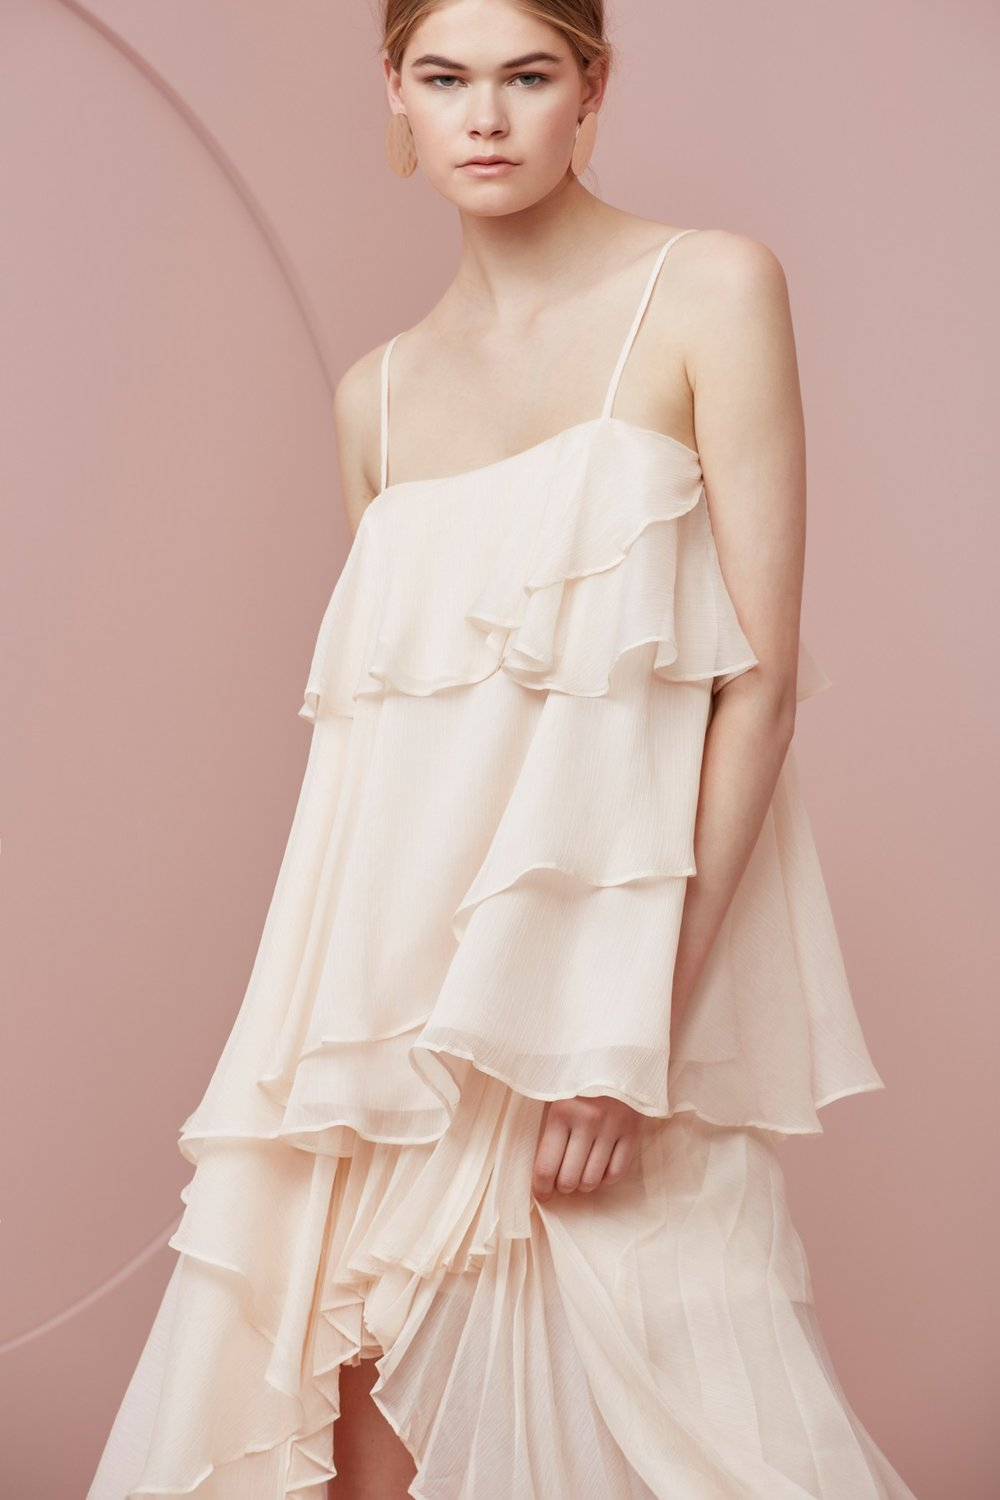 Keepsake The Label Say You Will Top + Skirt.